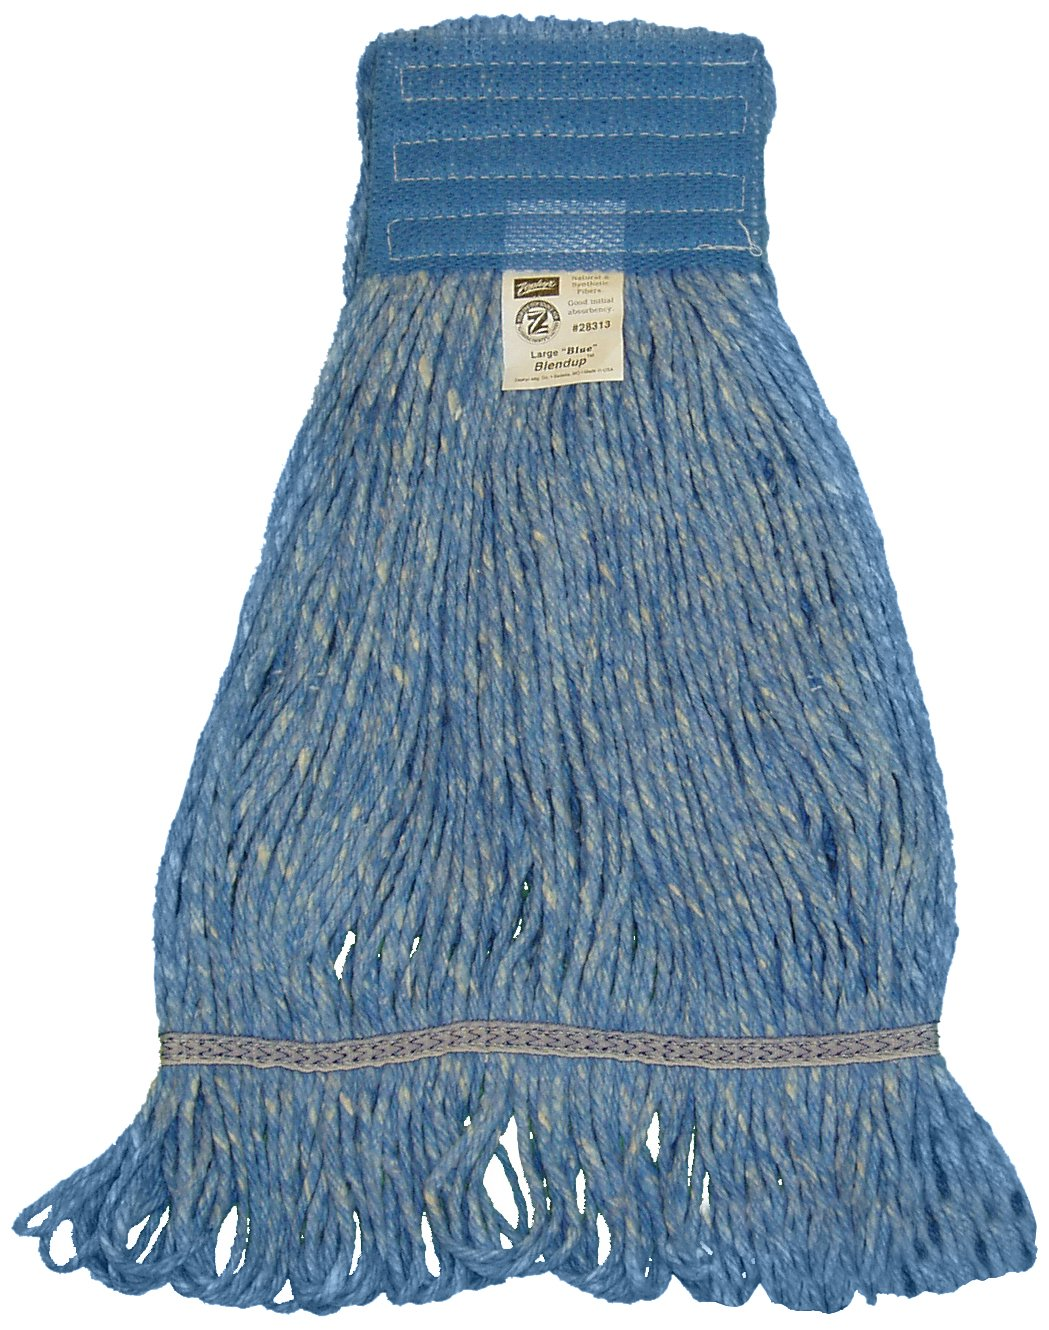 Zephyr 28312 Blendup Blue 4-Ply Yarn Natural and Synthetic Fiber Blended Medium Loop Mop Head (Pack of 12) by Zephyr